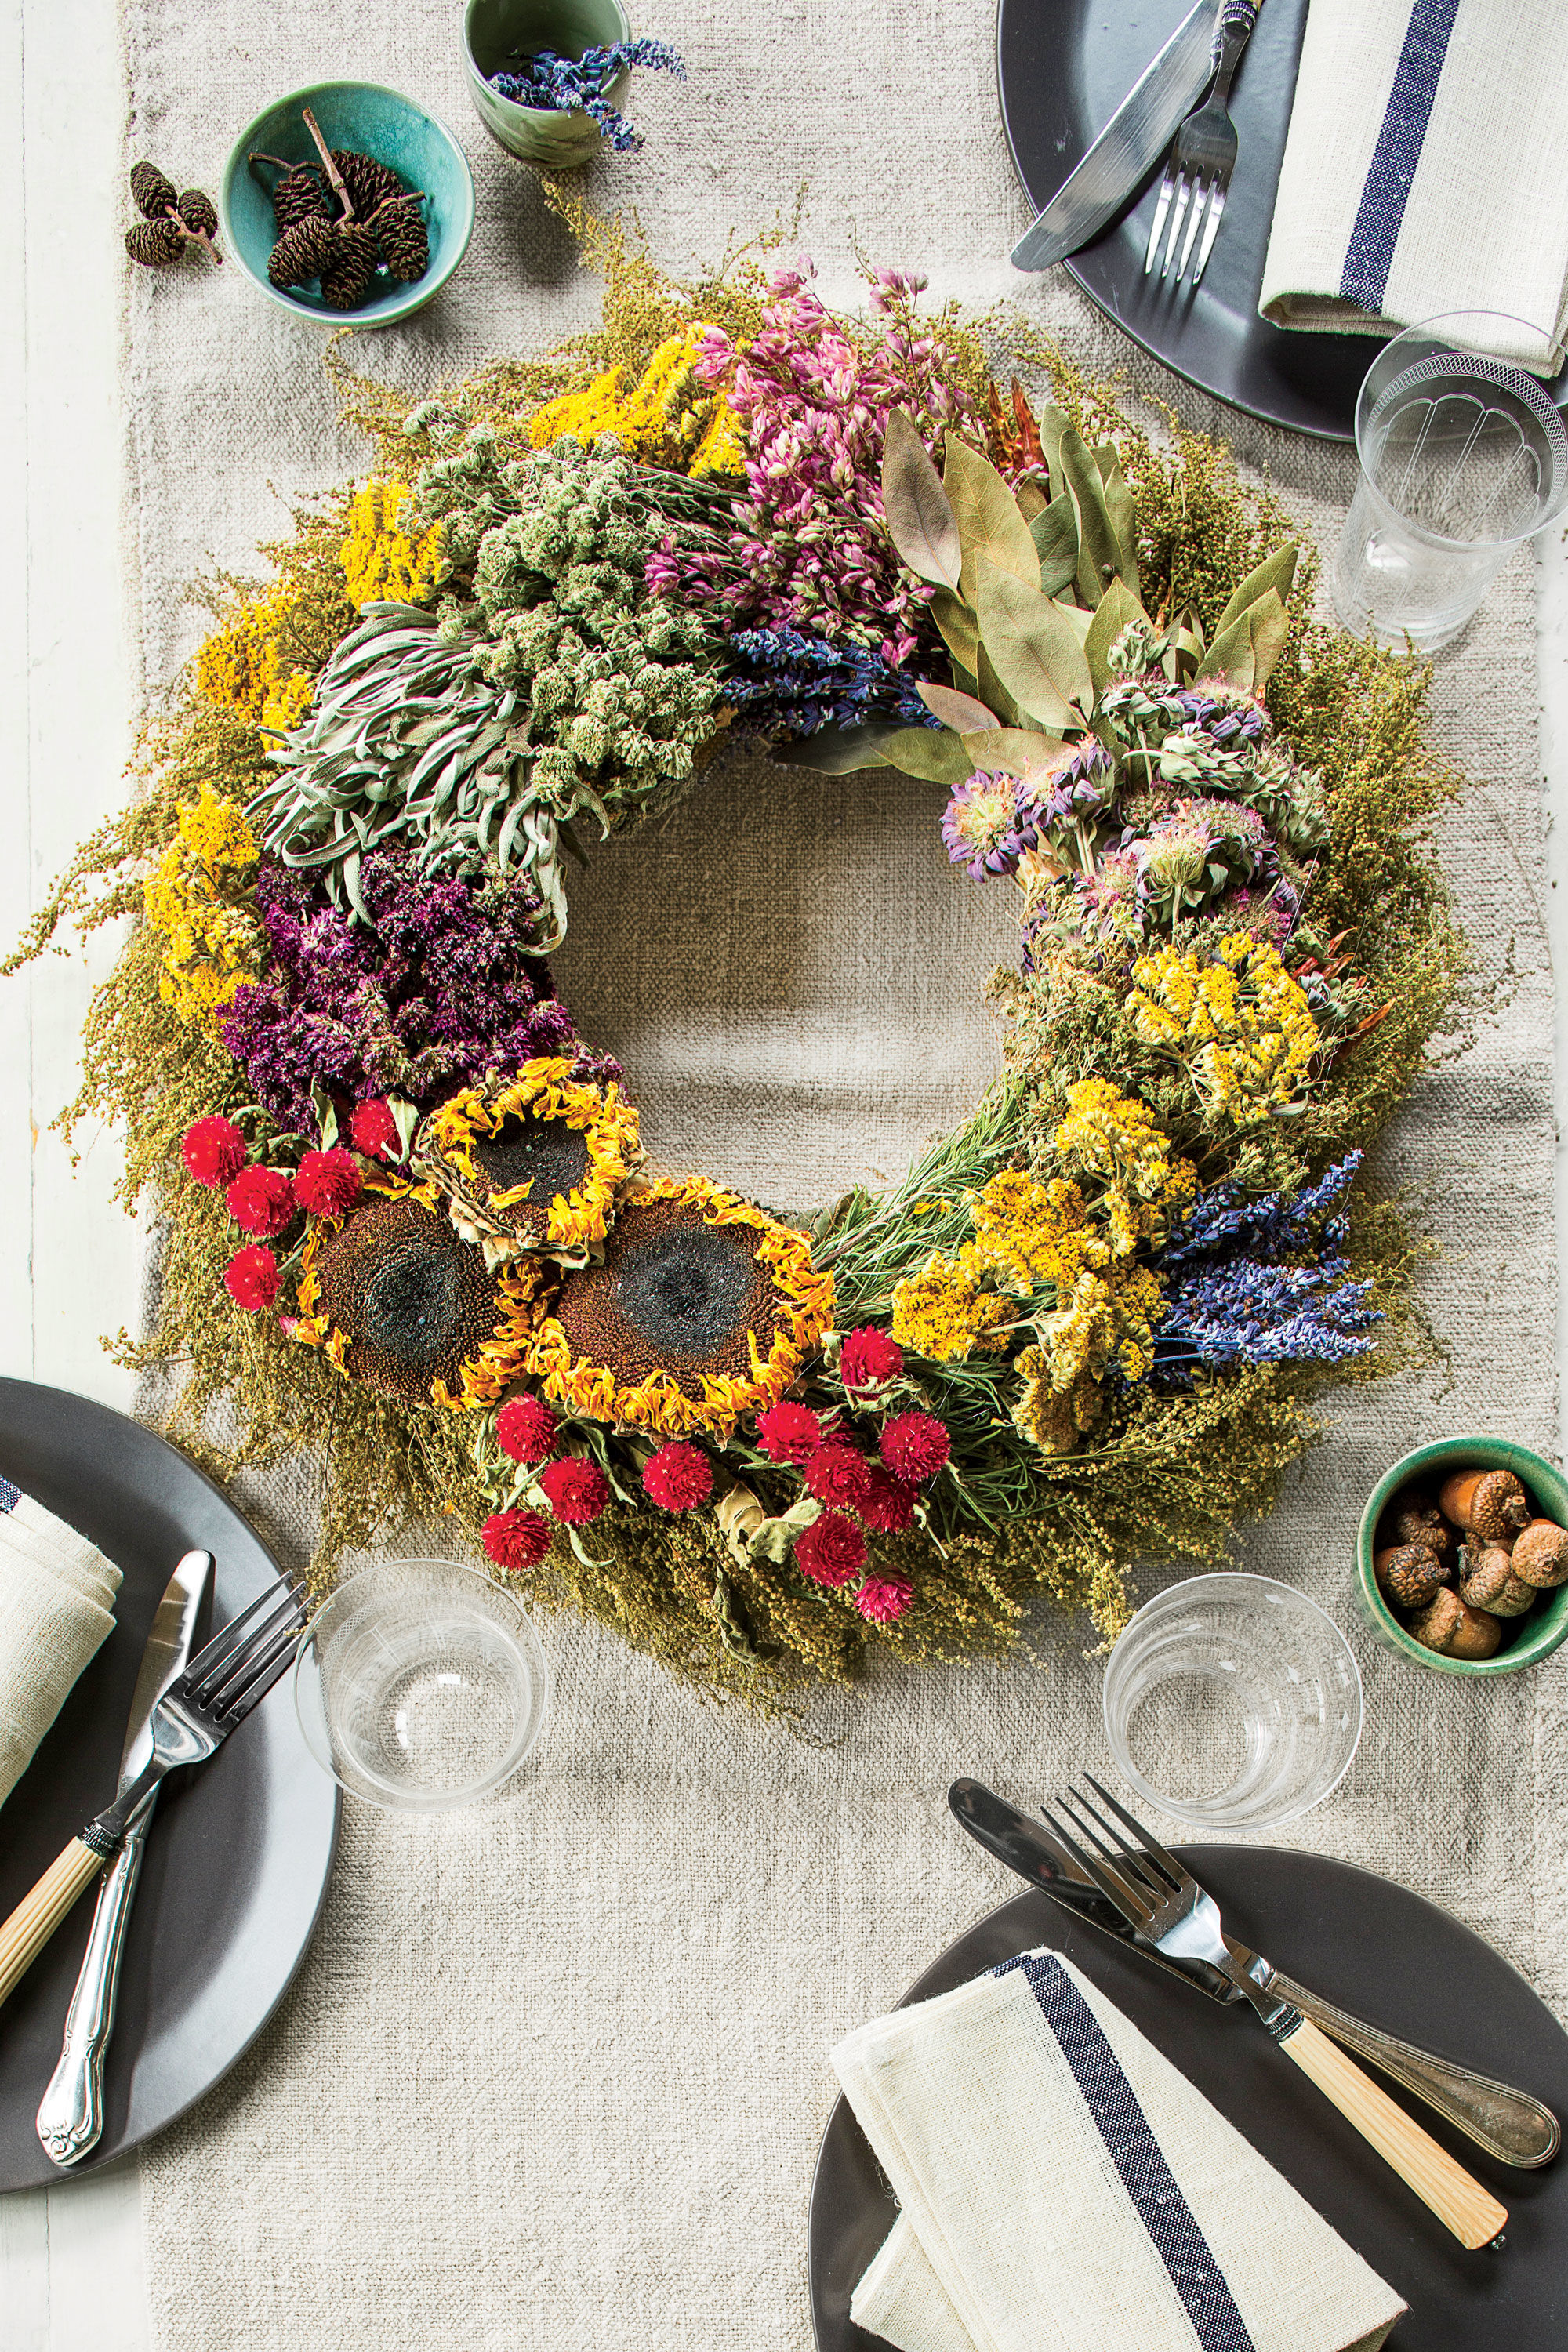 Make A Fall Wreath With Dried Flowers & Herbs